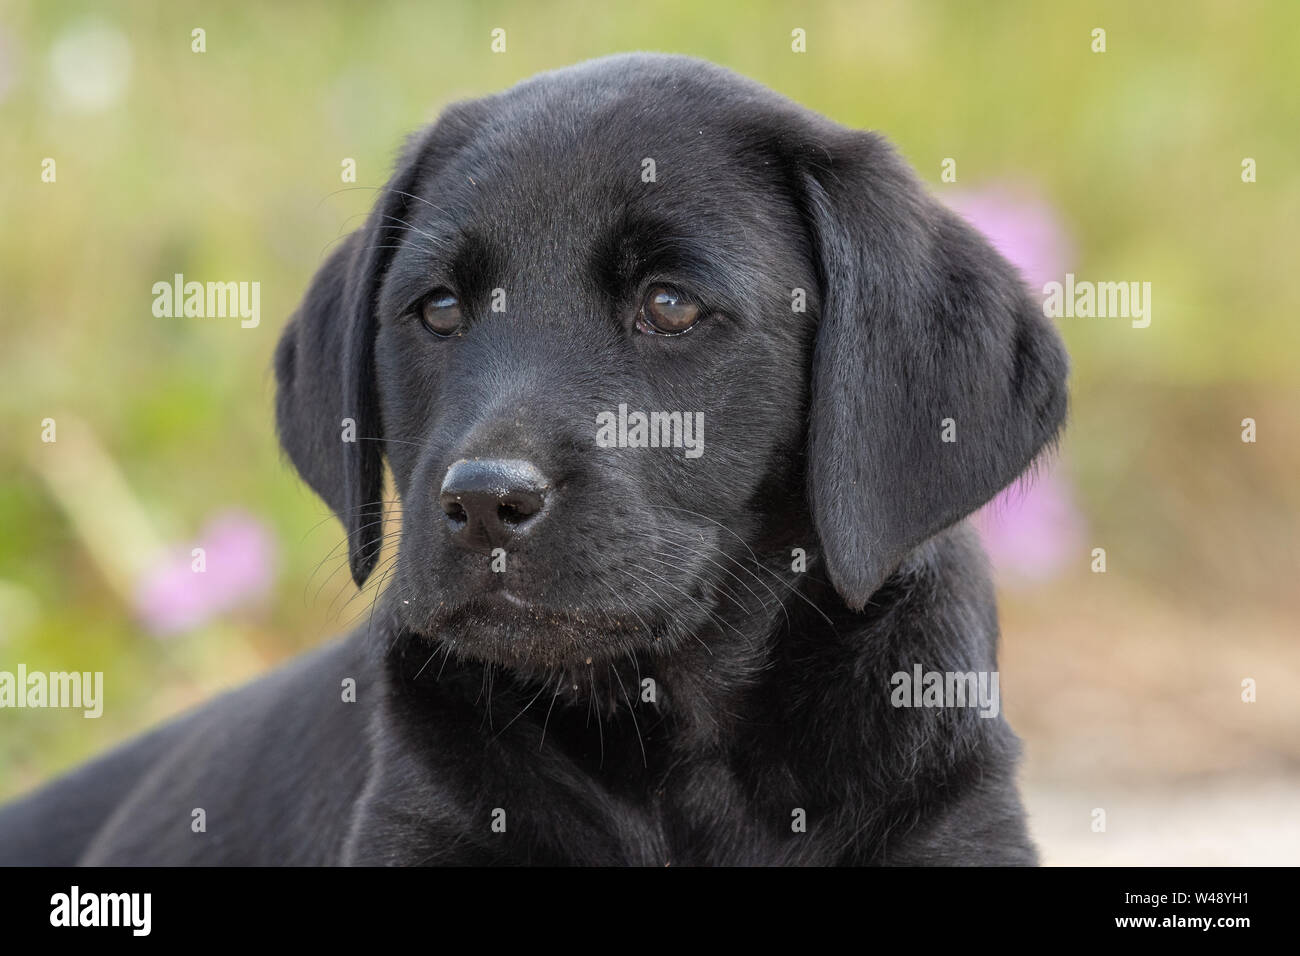 8 Week Old Labrador Puppy High Resolution Stock Photography And Images Alamy